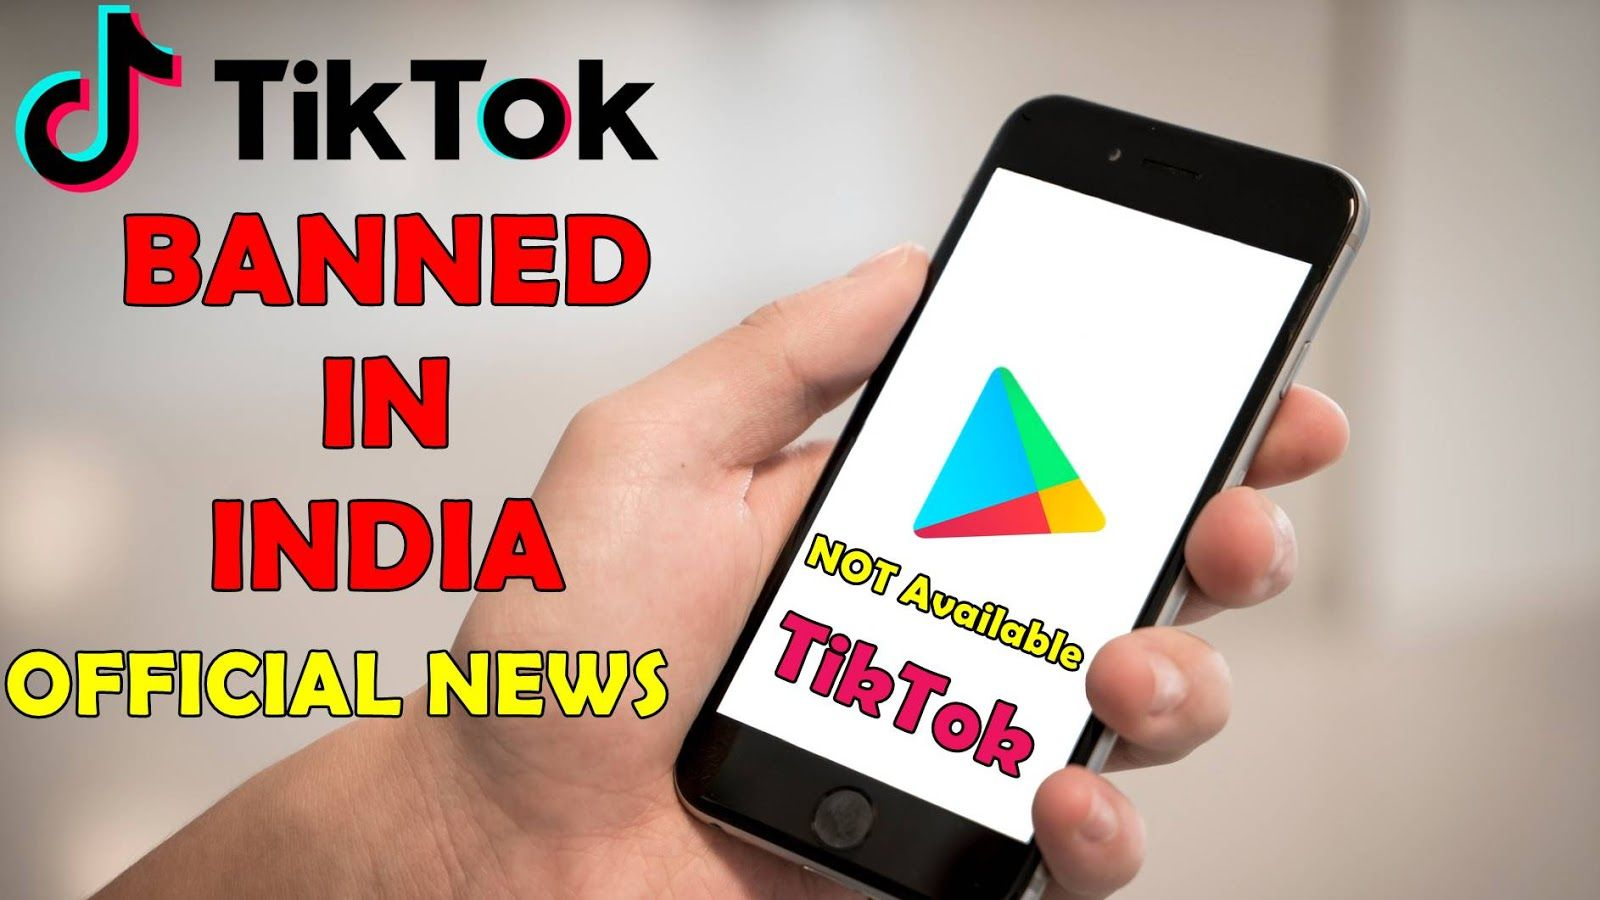 Tiktok Banned In India Removed From Google Playstore In India Social News Playstore Entertaining How To Remove